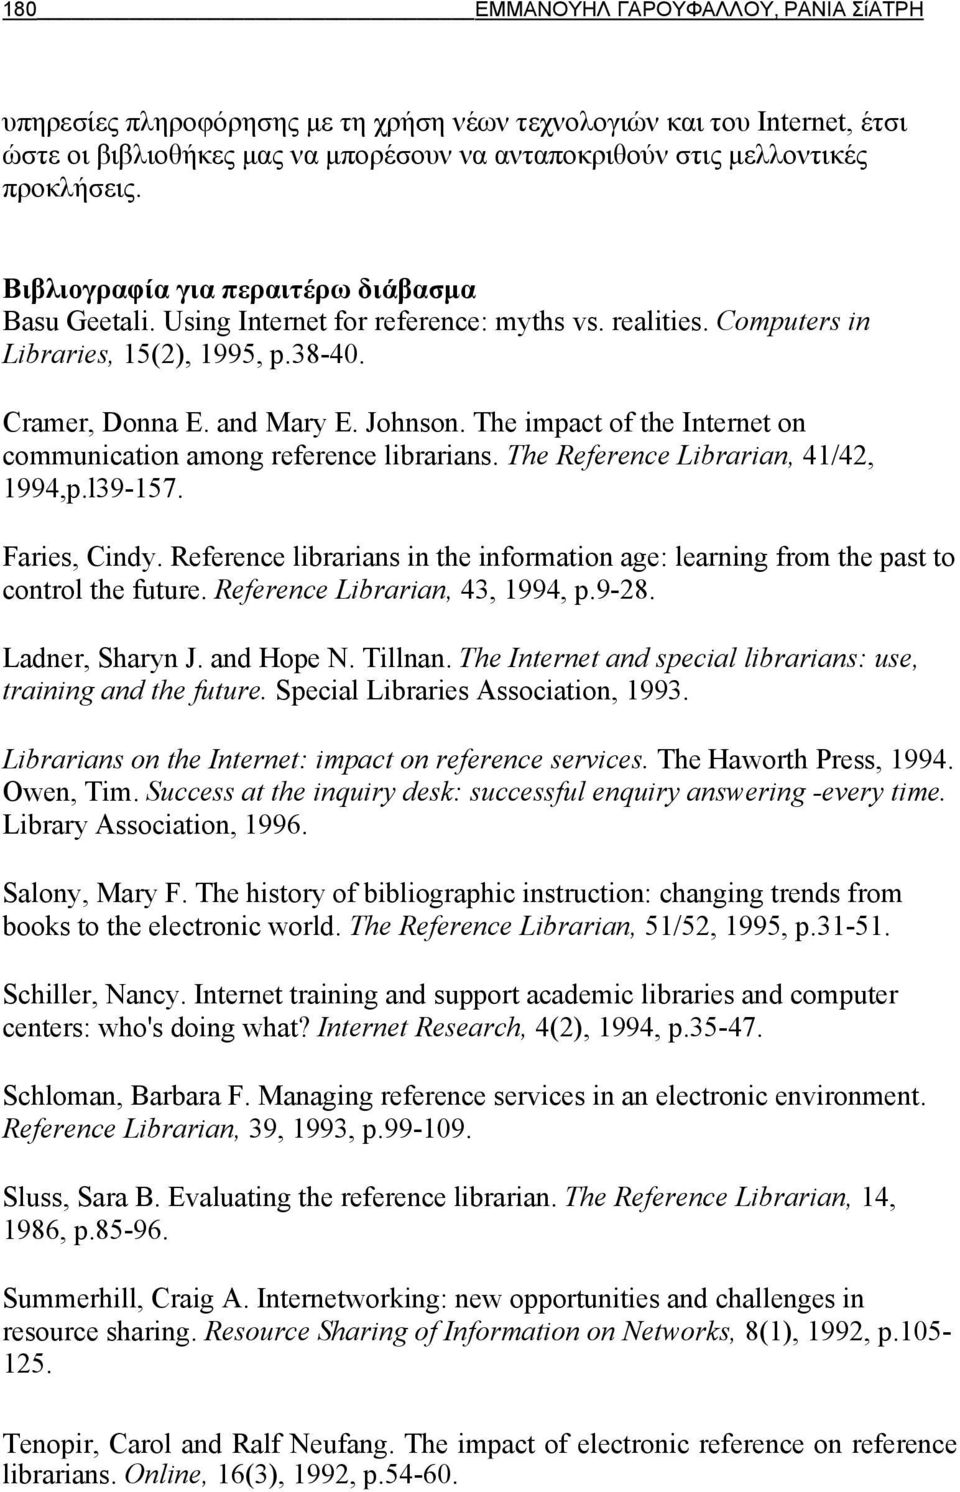 The impact of the Internet on communication among reference librarians. The Reference Librarian, 41/42, 1994,p.l39-157. Faries, Cindy.